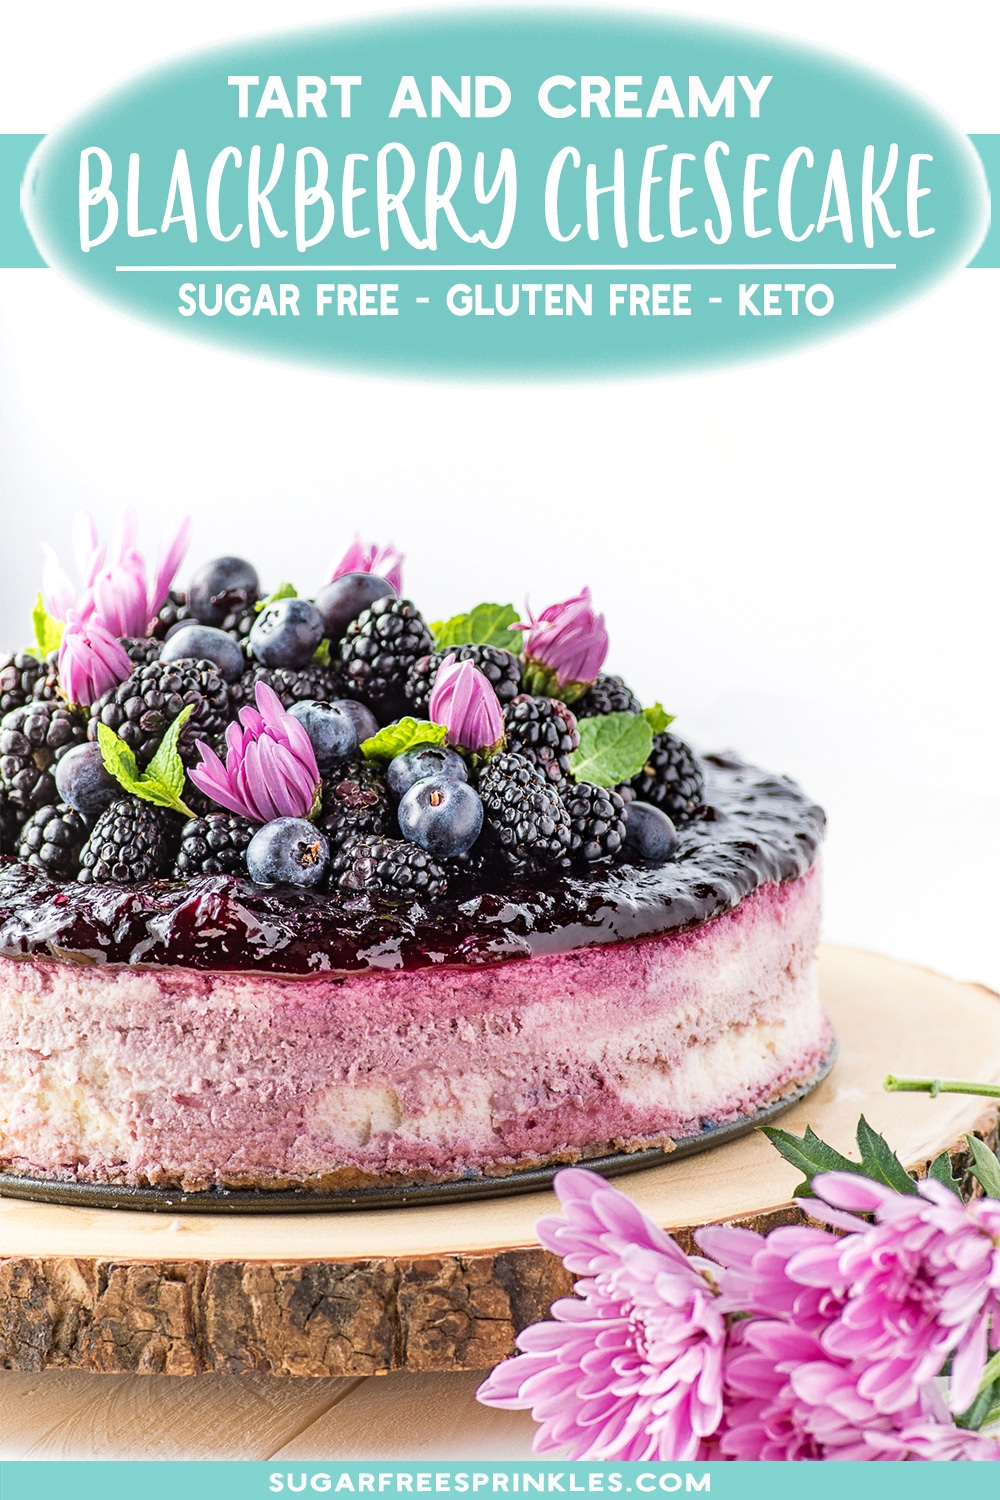 A beautifully layered blackberry cheesecake with a delicious warm spice crust. This recipe is low carb, keto friendly, sugar-free and gluten-free. A beautiful show-stopping low carb dessert perfect for a party or summer BBQ. No one will believe it\'s sugar-free.